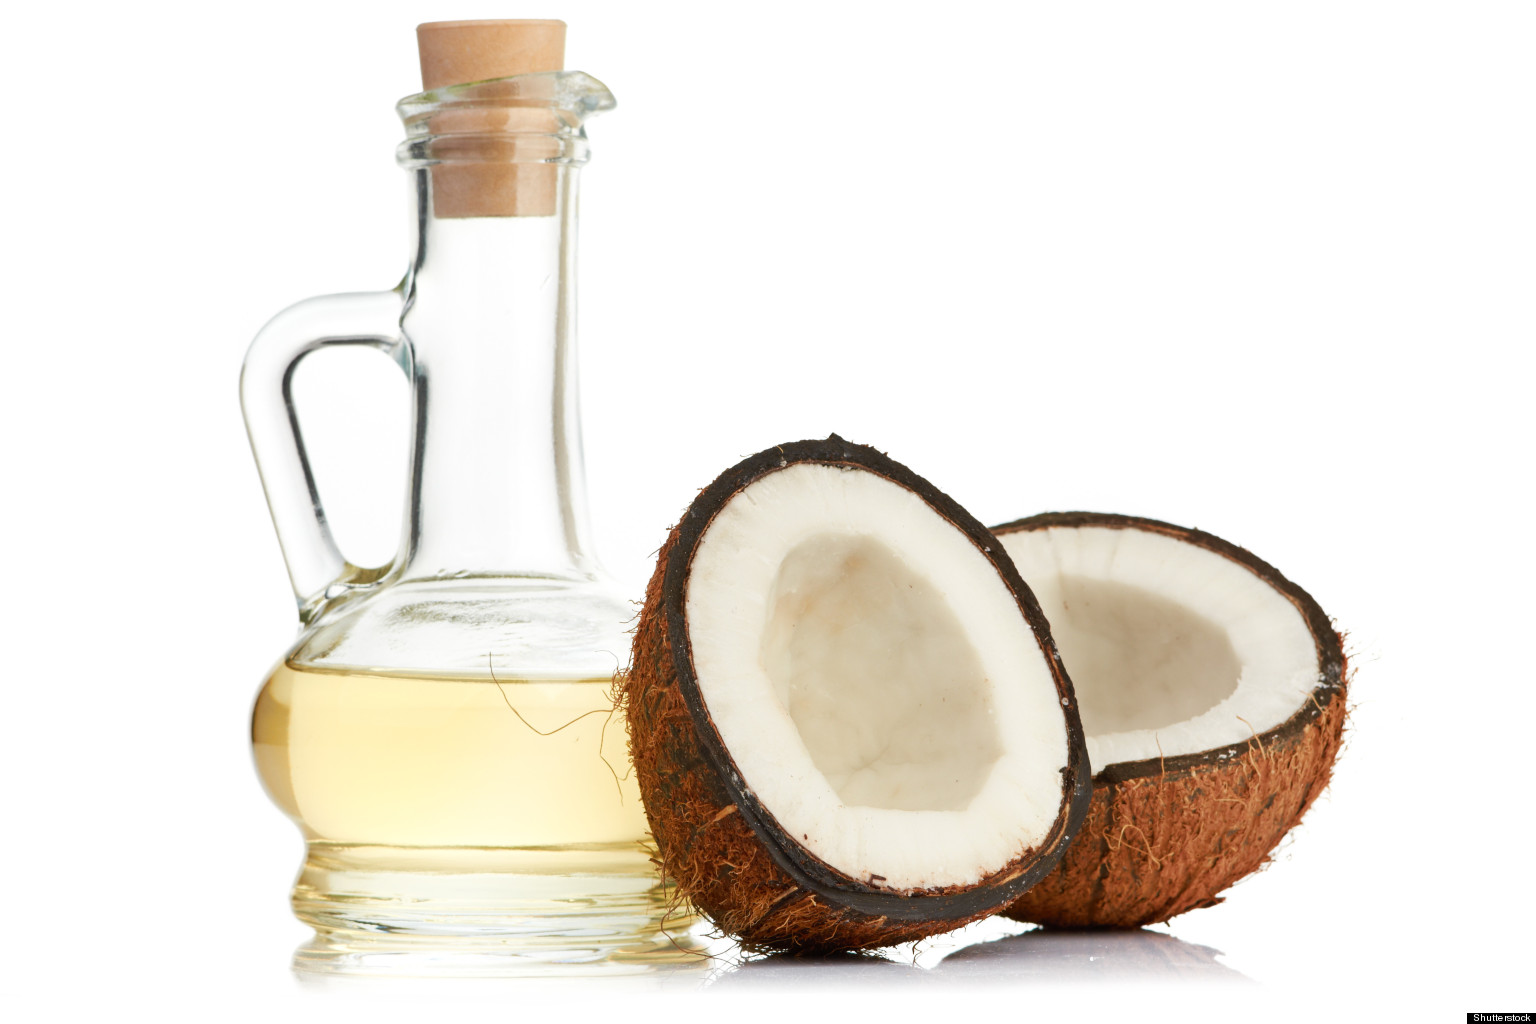 COCONUT OIL Beaufort Health and Fitness: 8 Essential Household Remedies